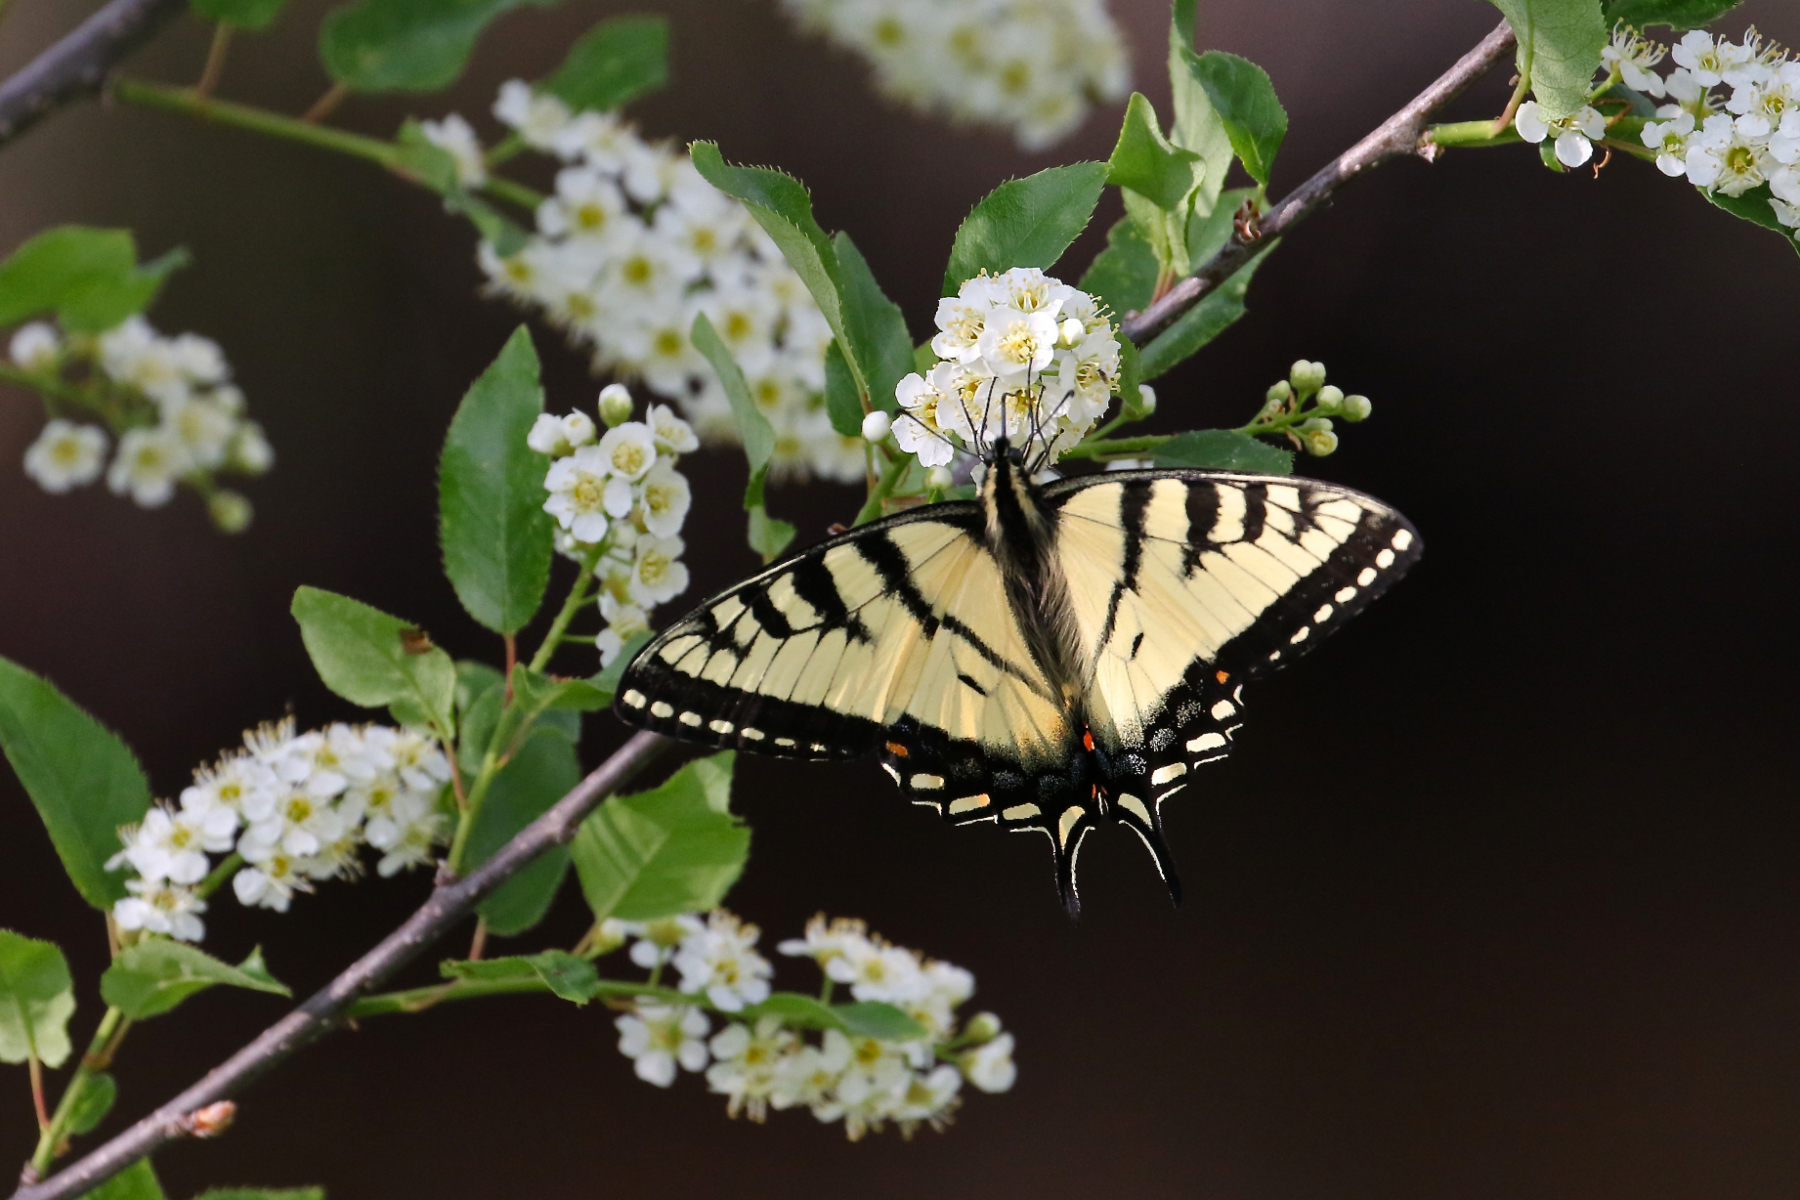 Tiger Swallowtail butterfly nectaring at chokecherry.